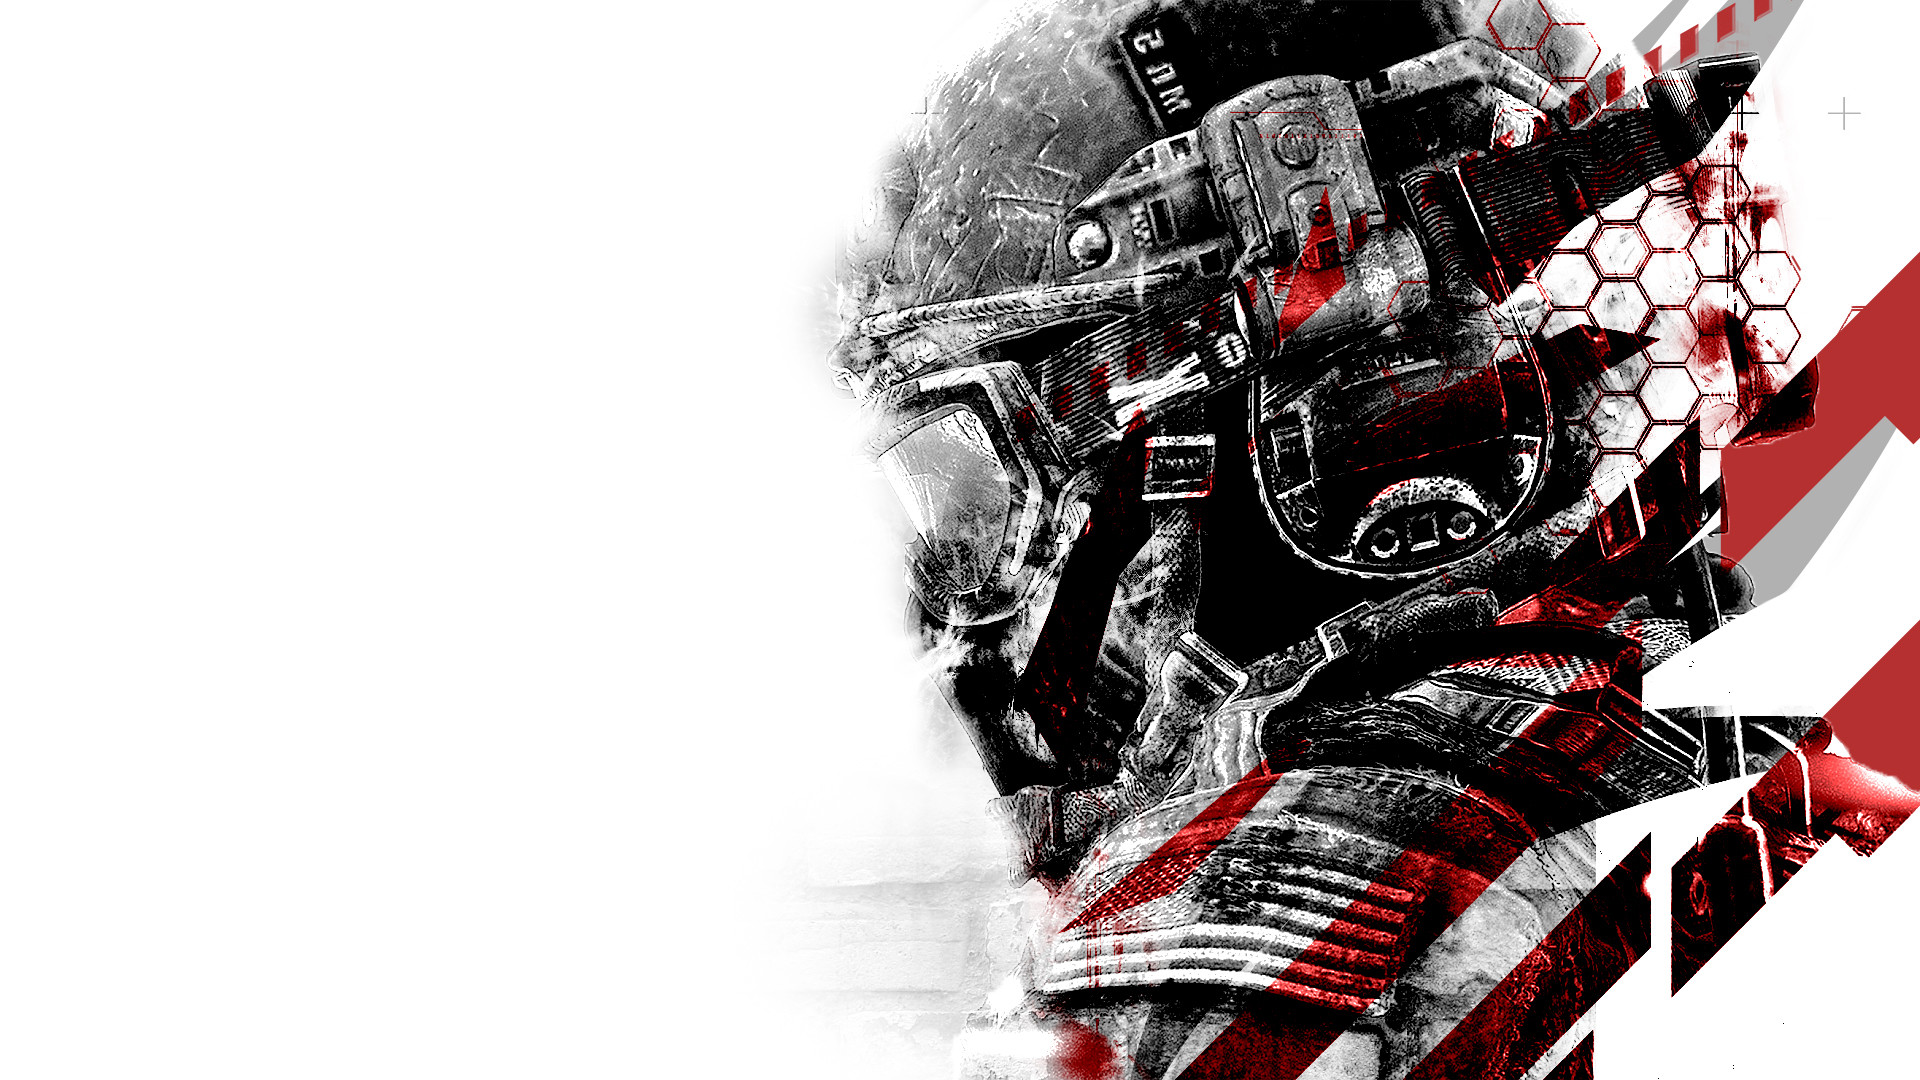 Res: 1920x1080, Soldier Wallpapers 6 - 1920 X 1080